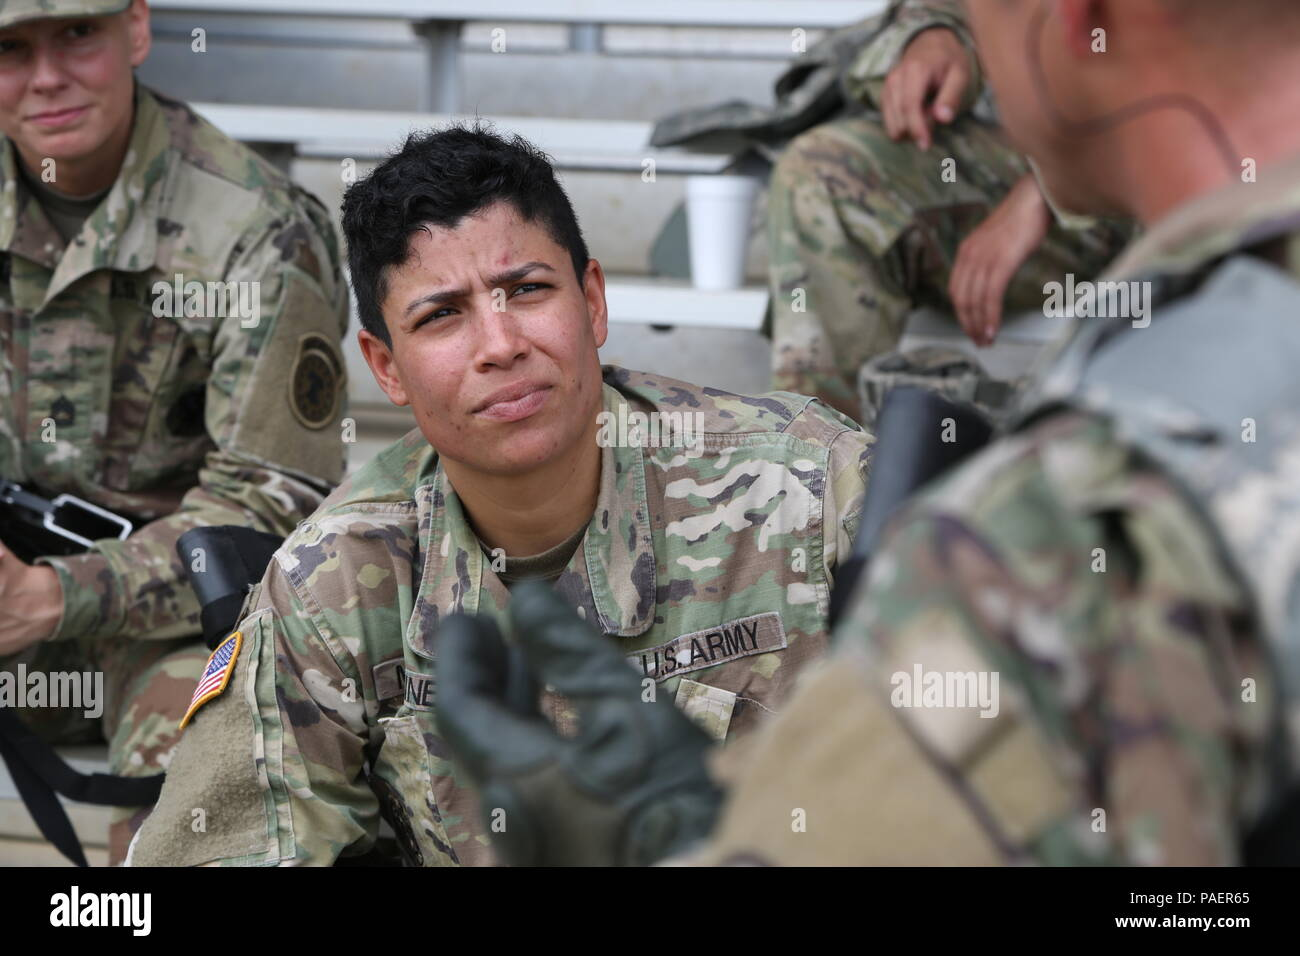 Staff Sgt. Gretchen Martinez from the Fires Center of Excellence talks to her fellow competitors during the Range event for the TRADOC Best Warrior Competition, Fort Gordon, Georgia, July 17, 2018. The Best Warrior Competition recognizes TRADOC NCOs and Soldiers who demonstrate commitment to the Army Values, embody the Warrior Ethos, and represent the force of the future by testing them with physical fitness assessments, written exams, urban warfare simulations, and other warrior tasks and battle drills. (U.S. Army photo by Pfc. Caeli Morris) Stock Photo